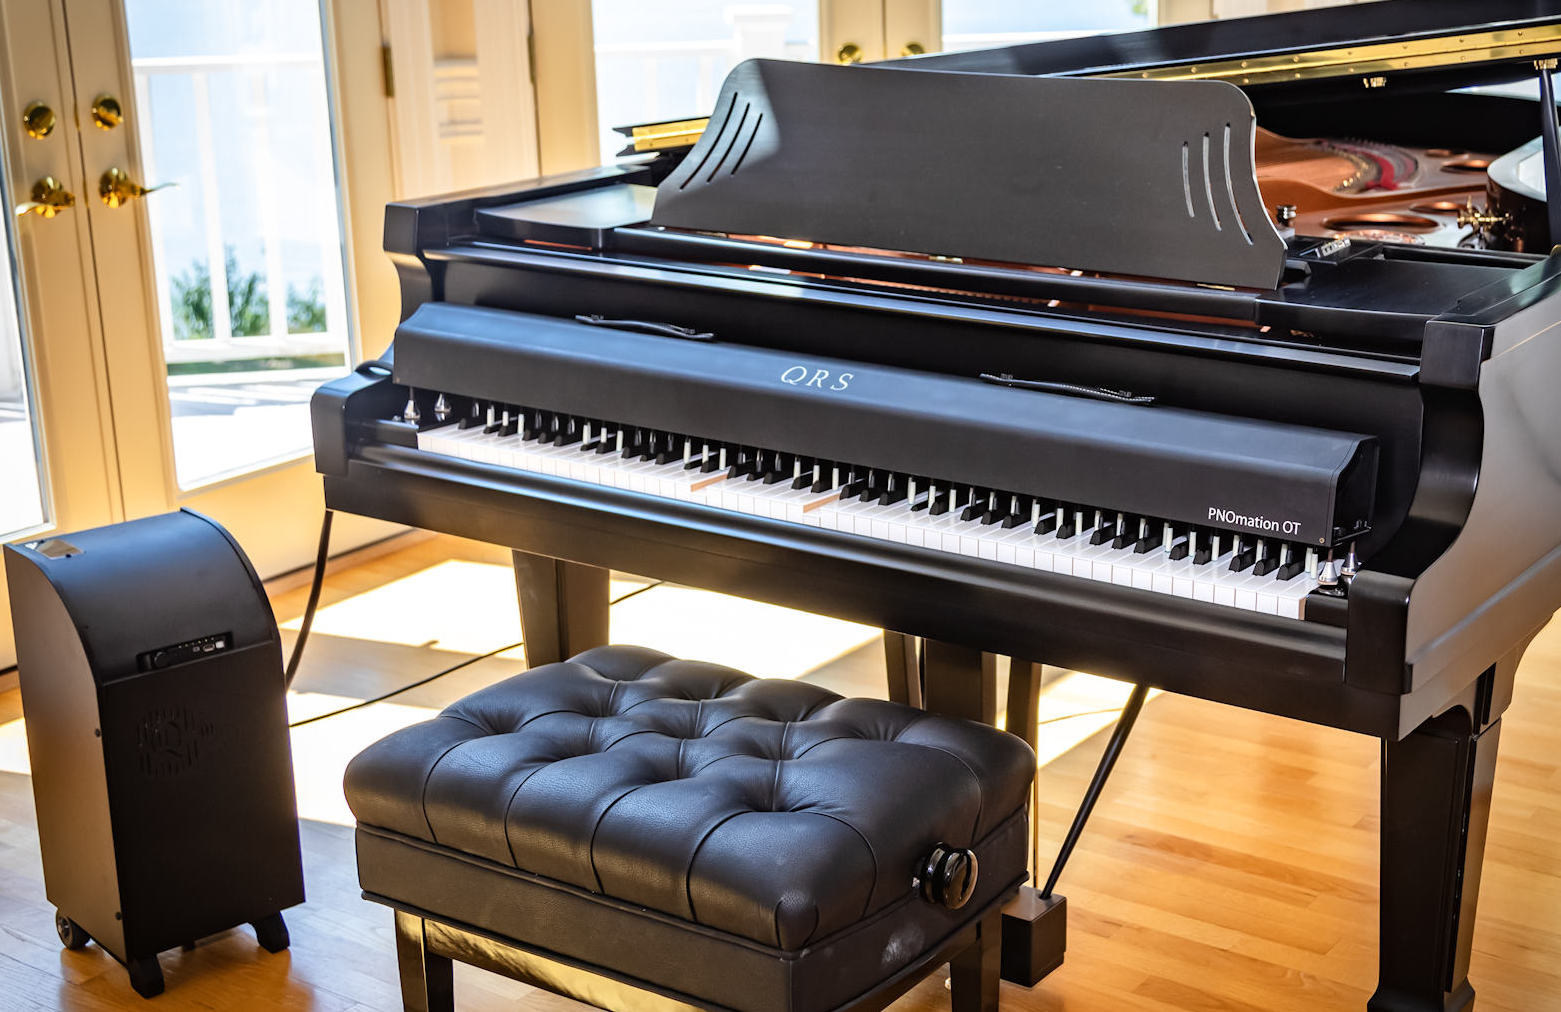 QRS combines its PNOmation player piano platform, music with some distinctive mechanical designs to deliver a truly unique product, PNOmation OT(Over the Top) a portable player piano system. PNOmation OT can convert just about any 88-note keyboard into a player piano in minutes.